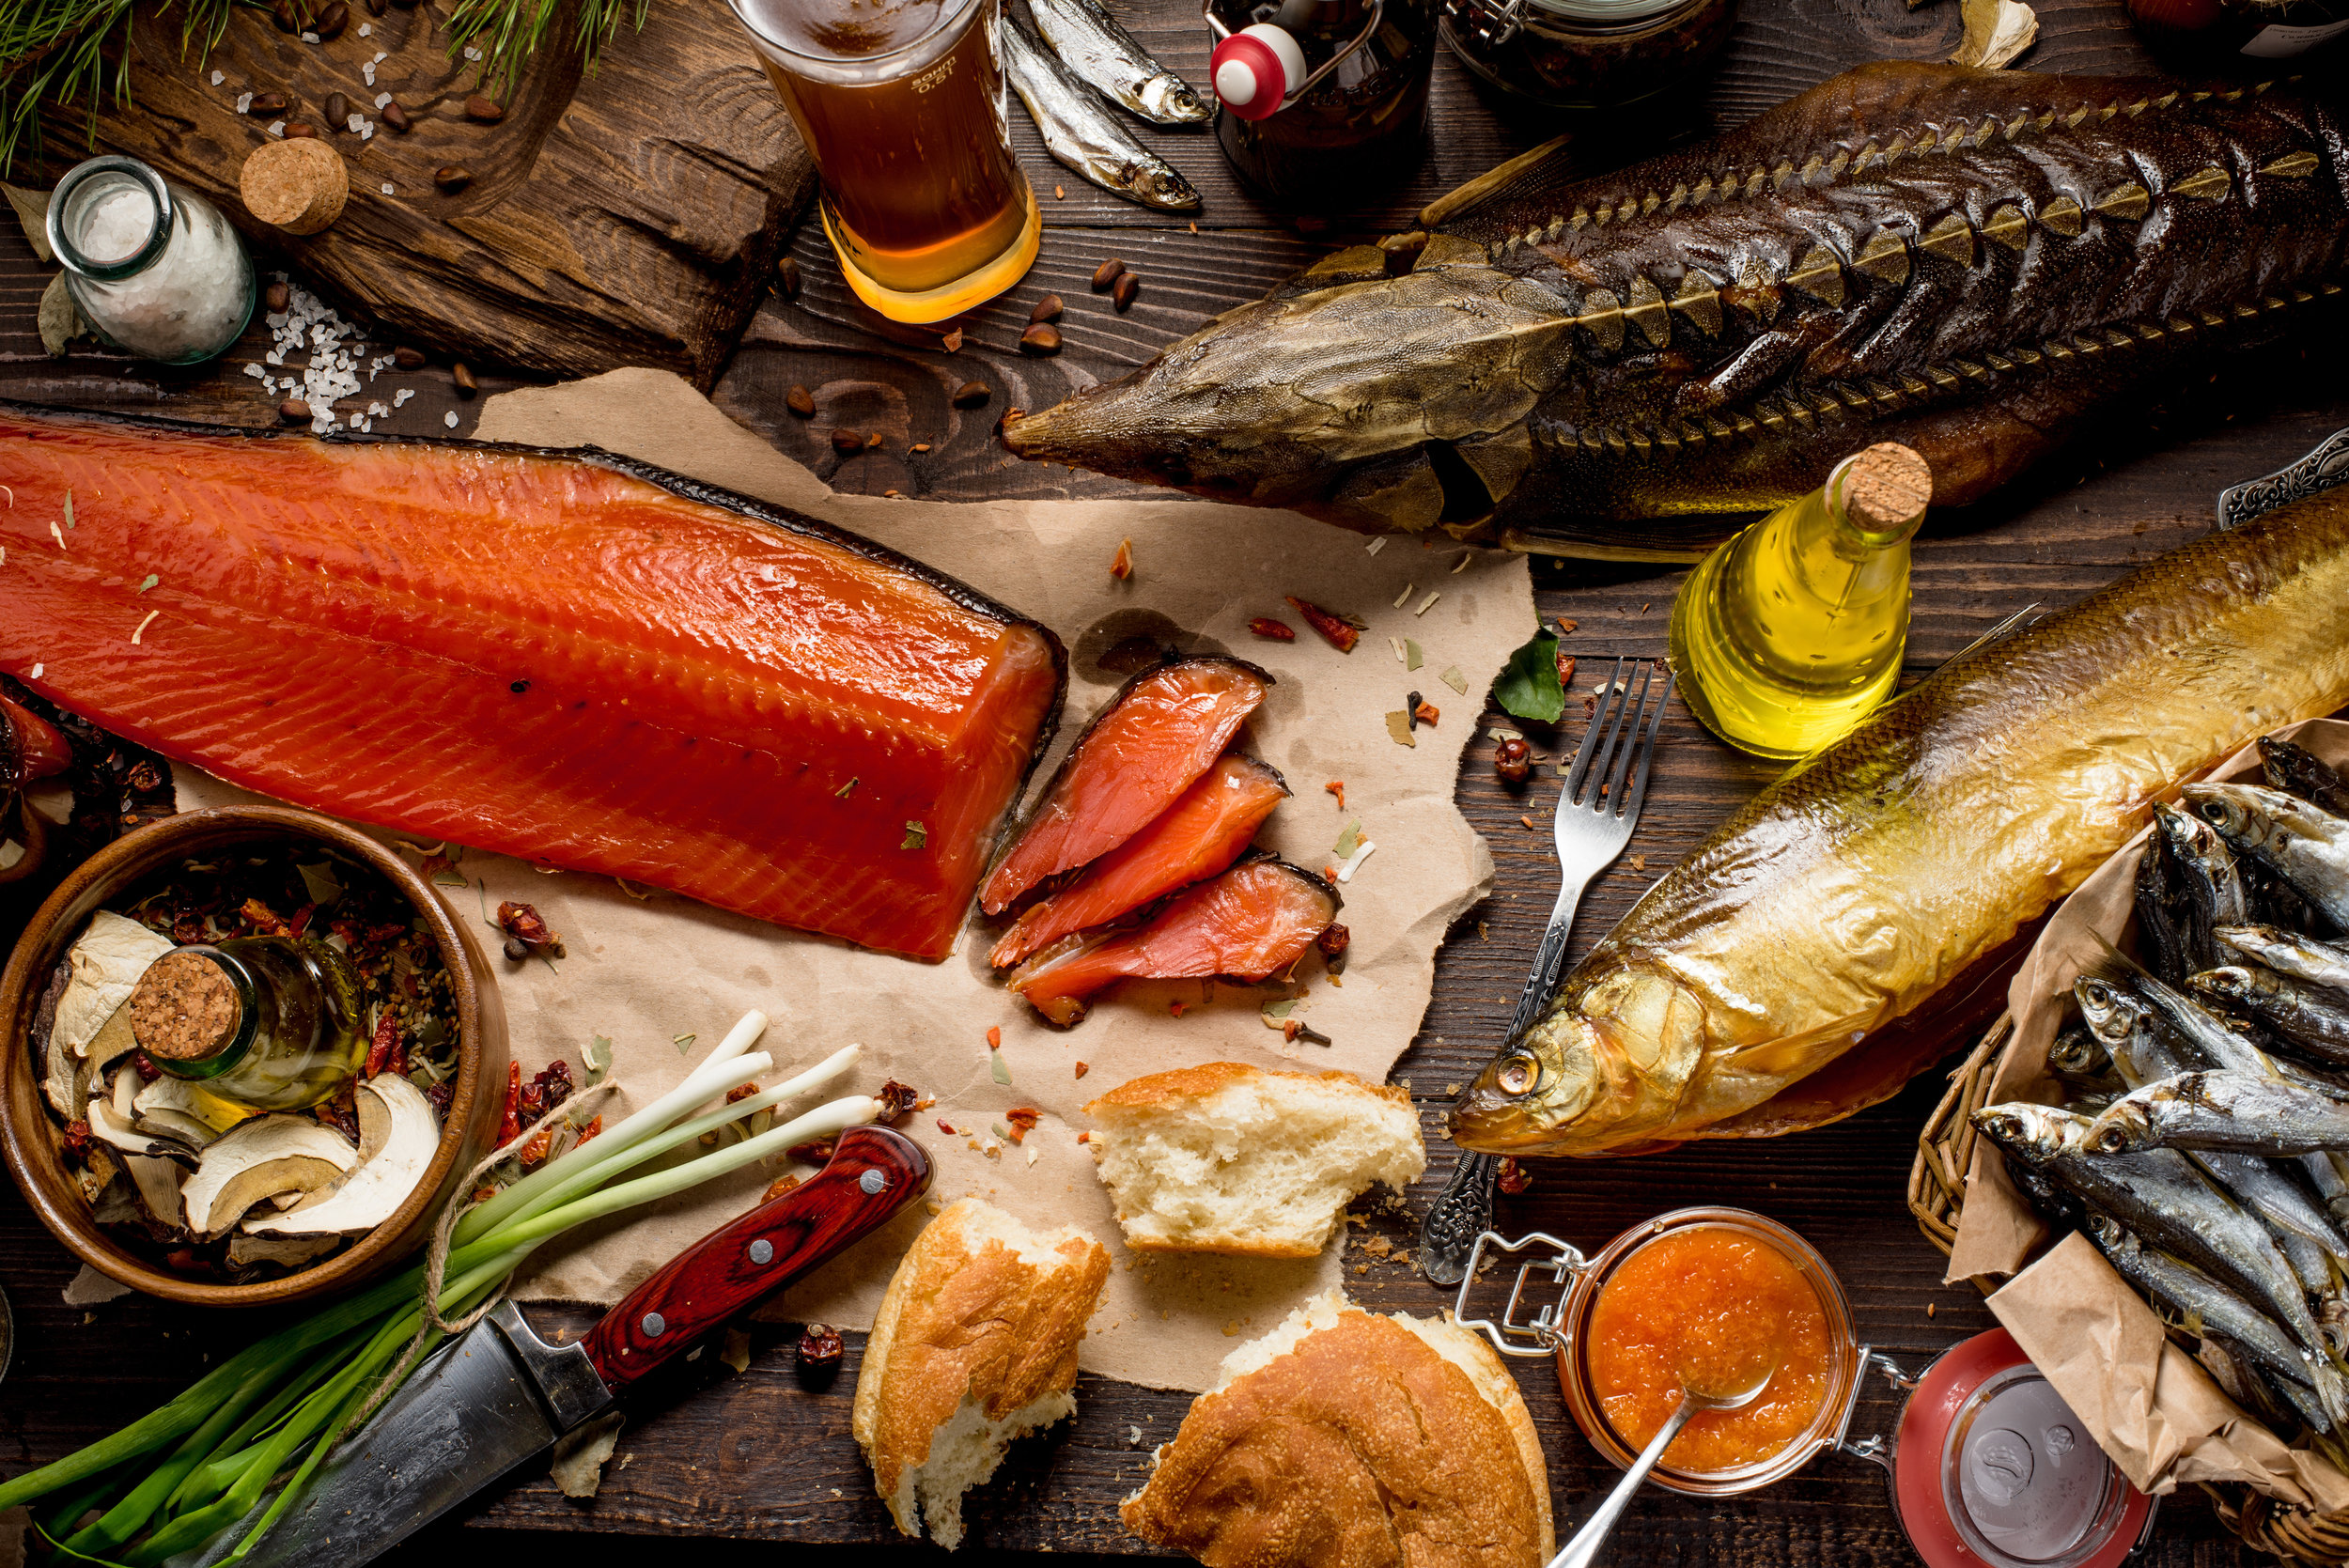 Smoking is one of the oldest ways of preserving foods. Brookman's Artisan Smokery practices old world traditional smokehouse methods to retain the authentic taste of properly smoked fish.